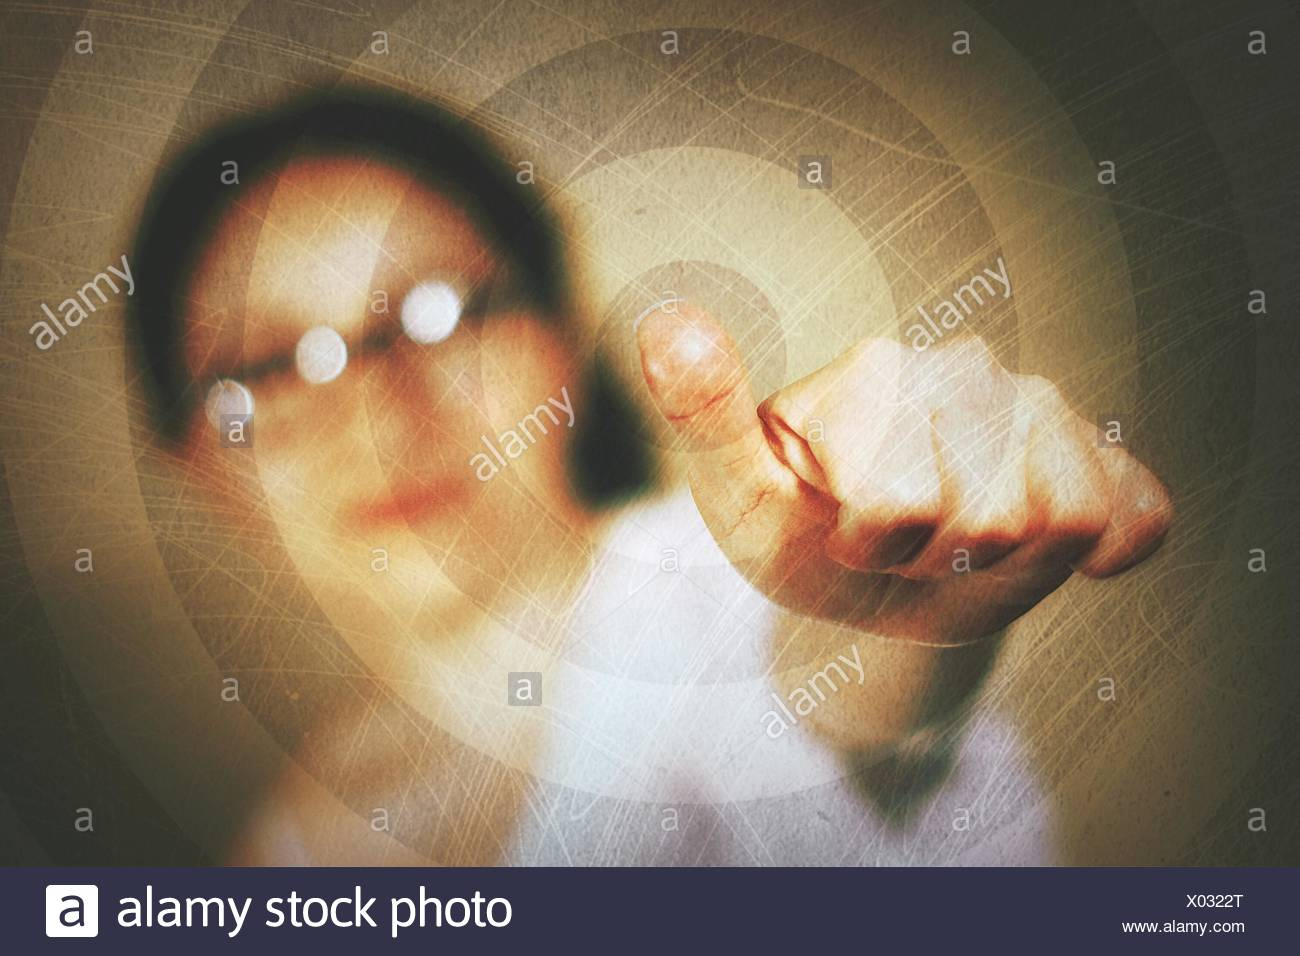 Digital Composite Image Of Woman Gesturing Thumbs Up - Stock Image